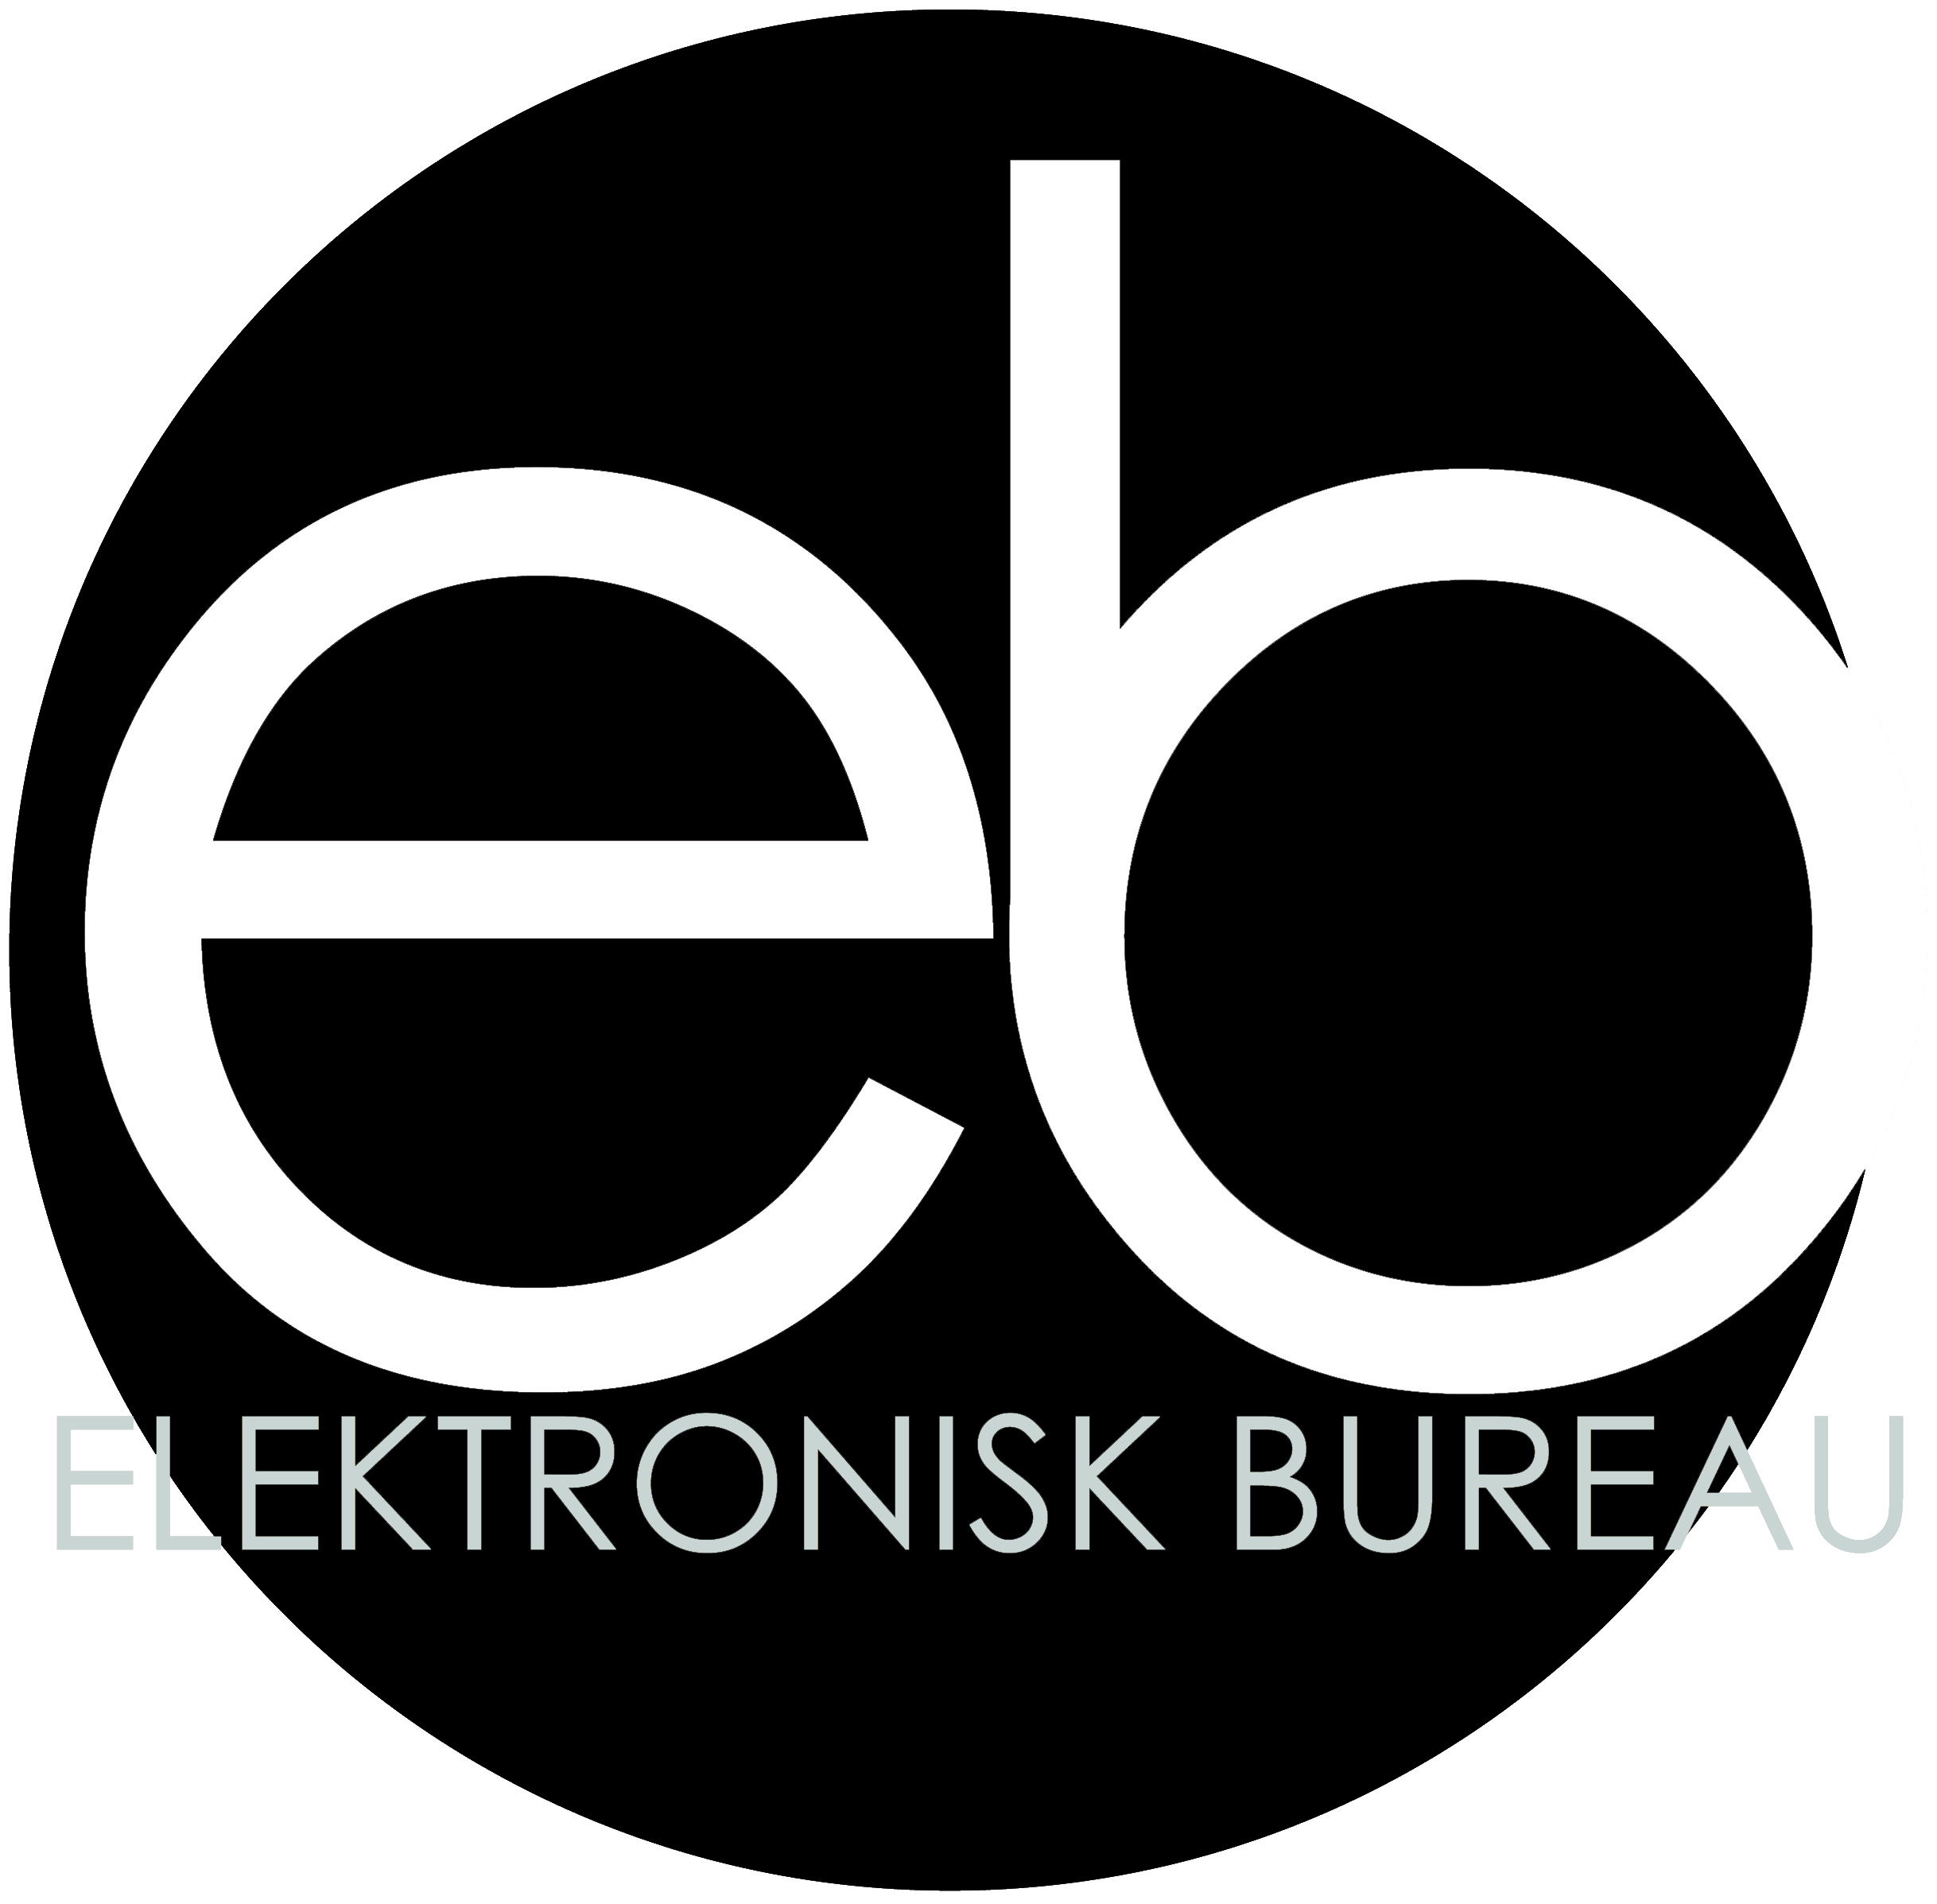 ELEKTRONISK BUREAU